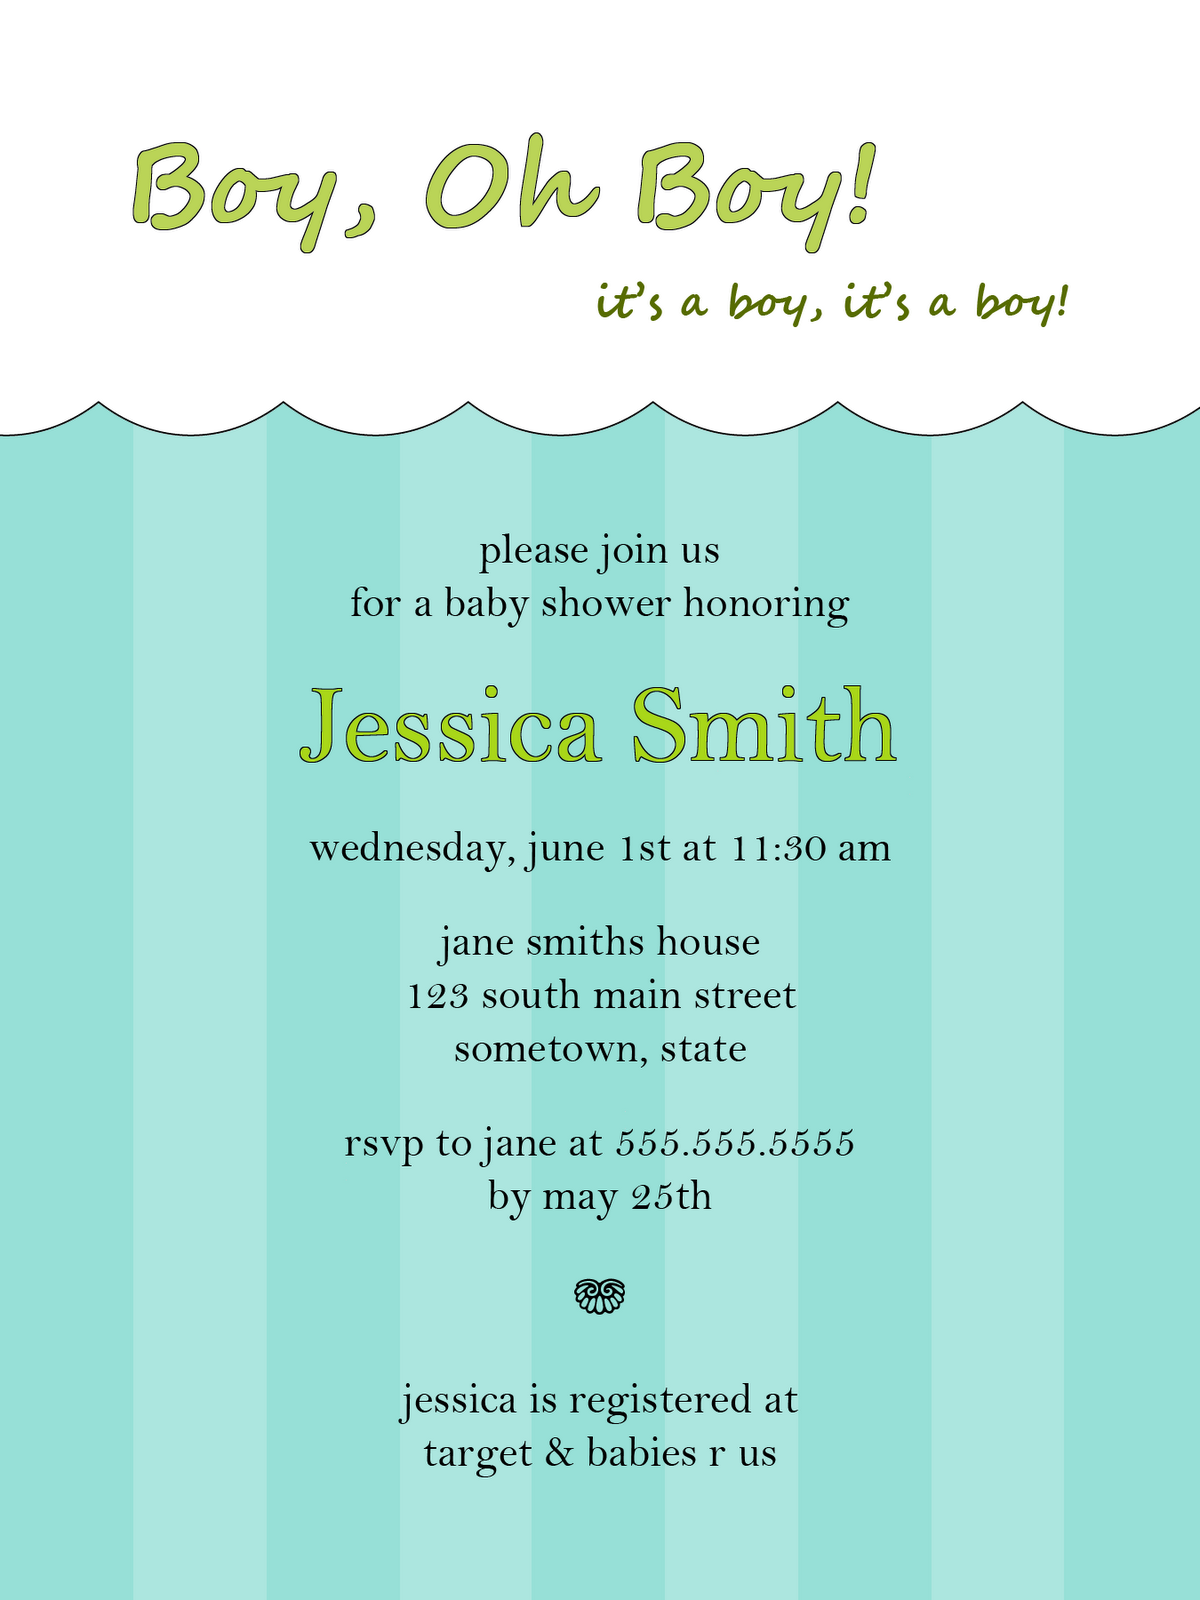 Free Baby Boy Shower Invitations | Elegant Invitations | Pinterest ...